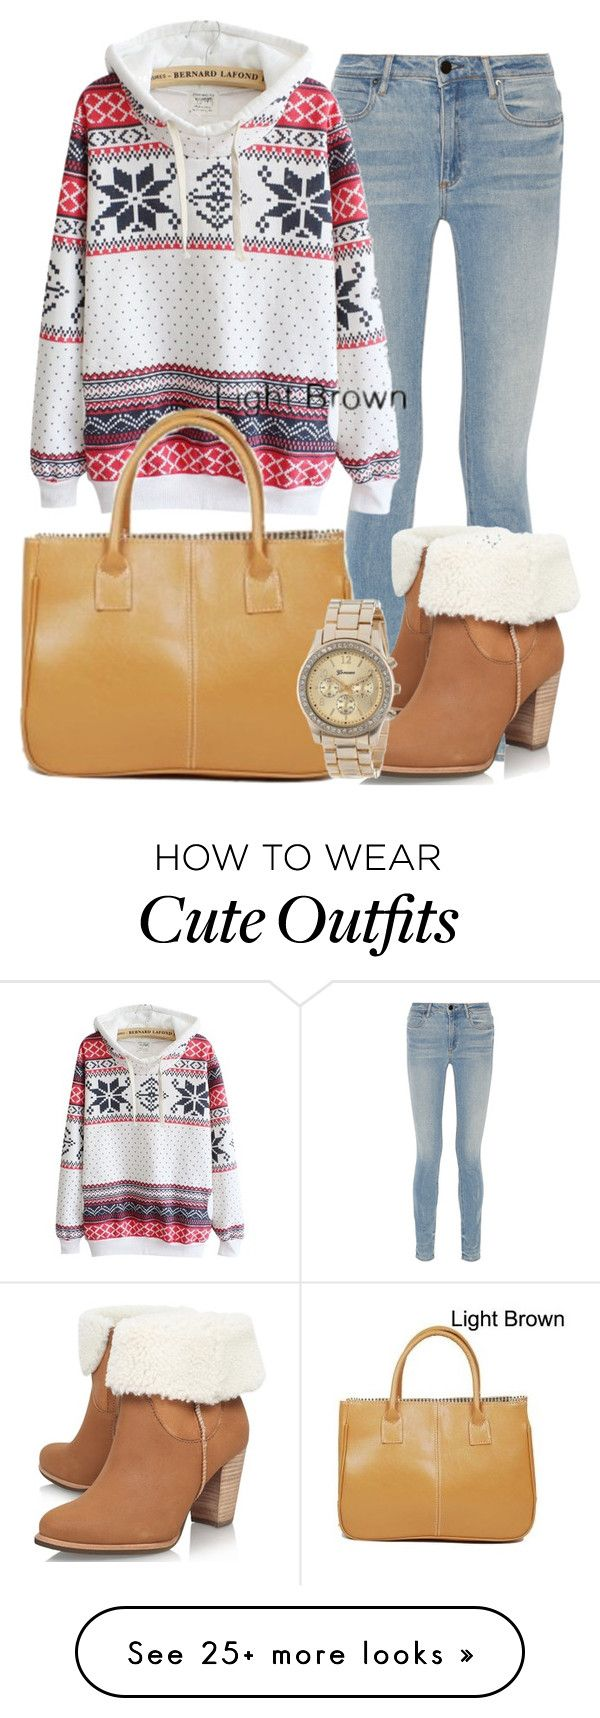 """Christmas Family Evening Special Outfit"" by myfriendshop on Polyvore featuring Alexander Wang and UGG Australia"